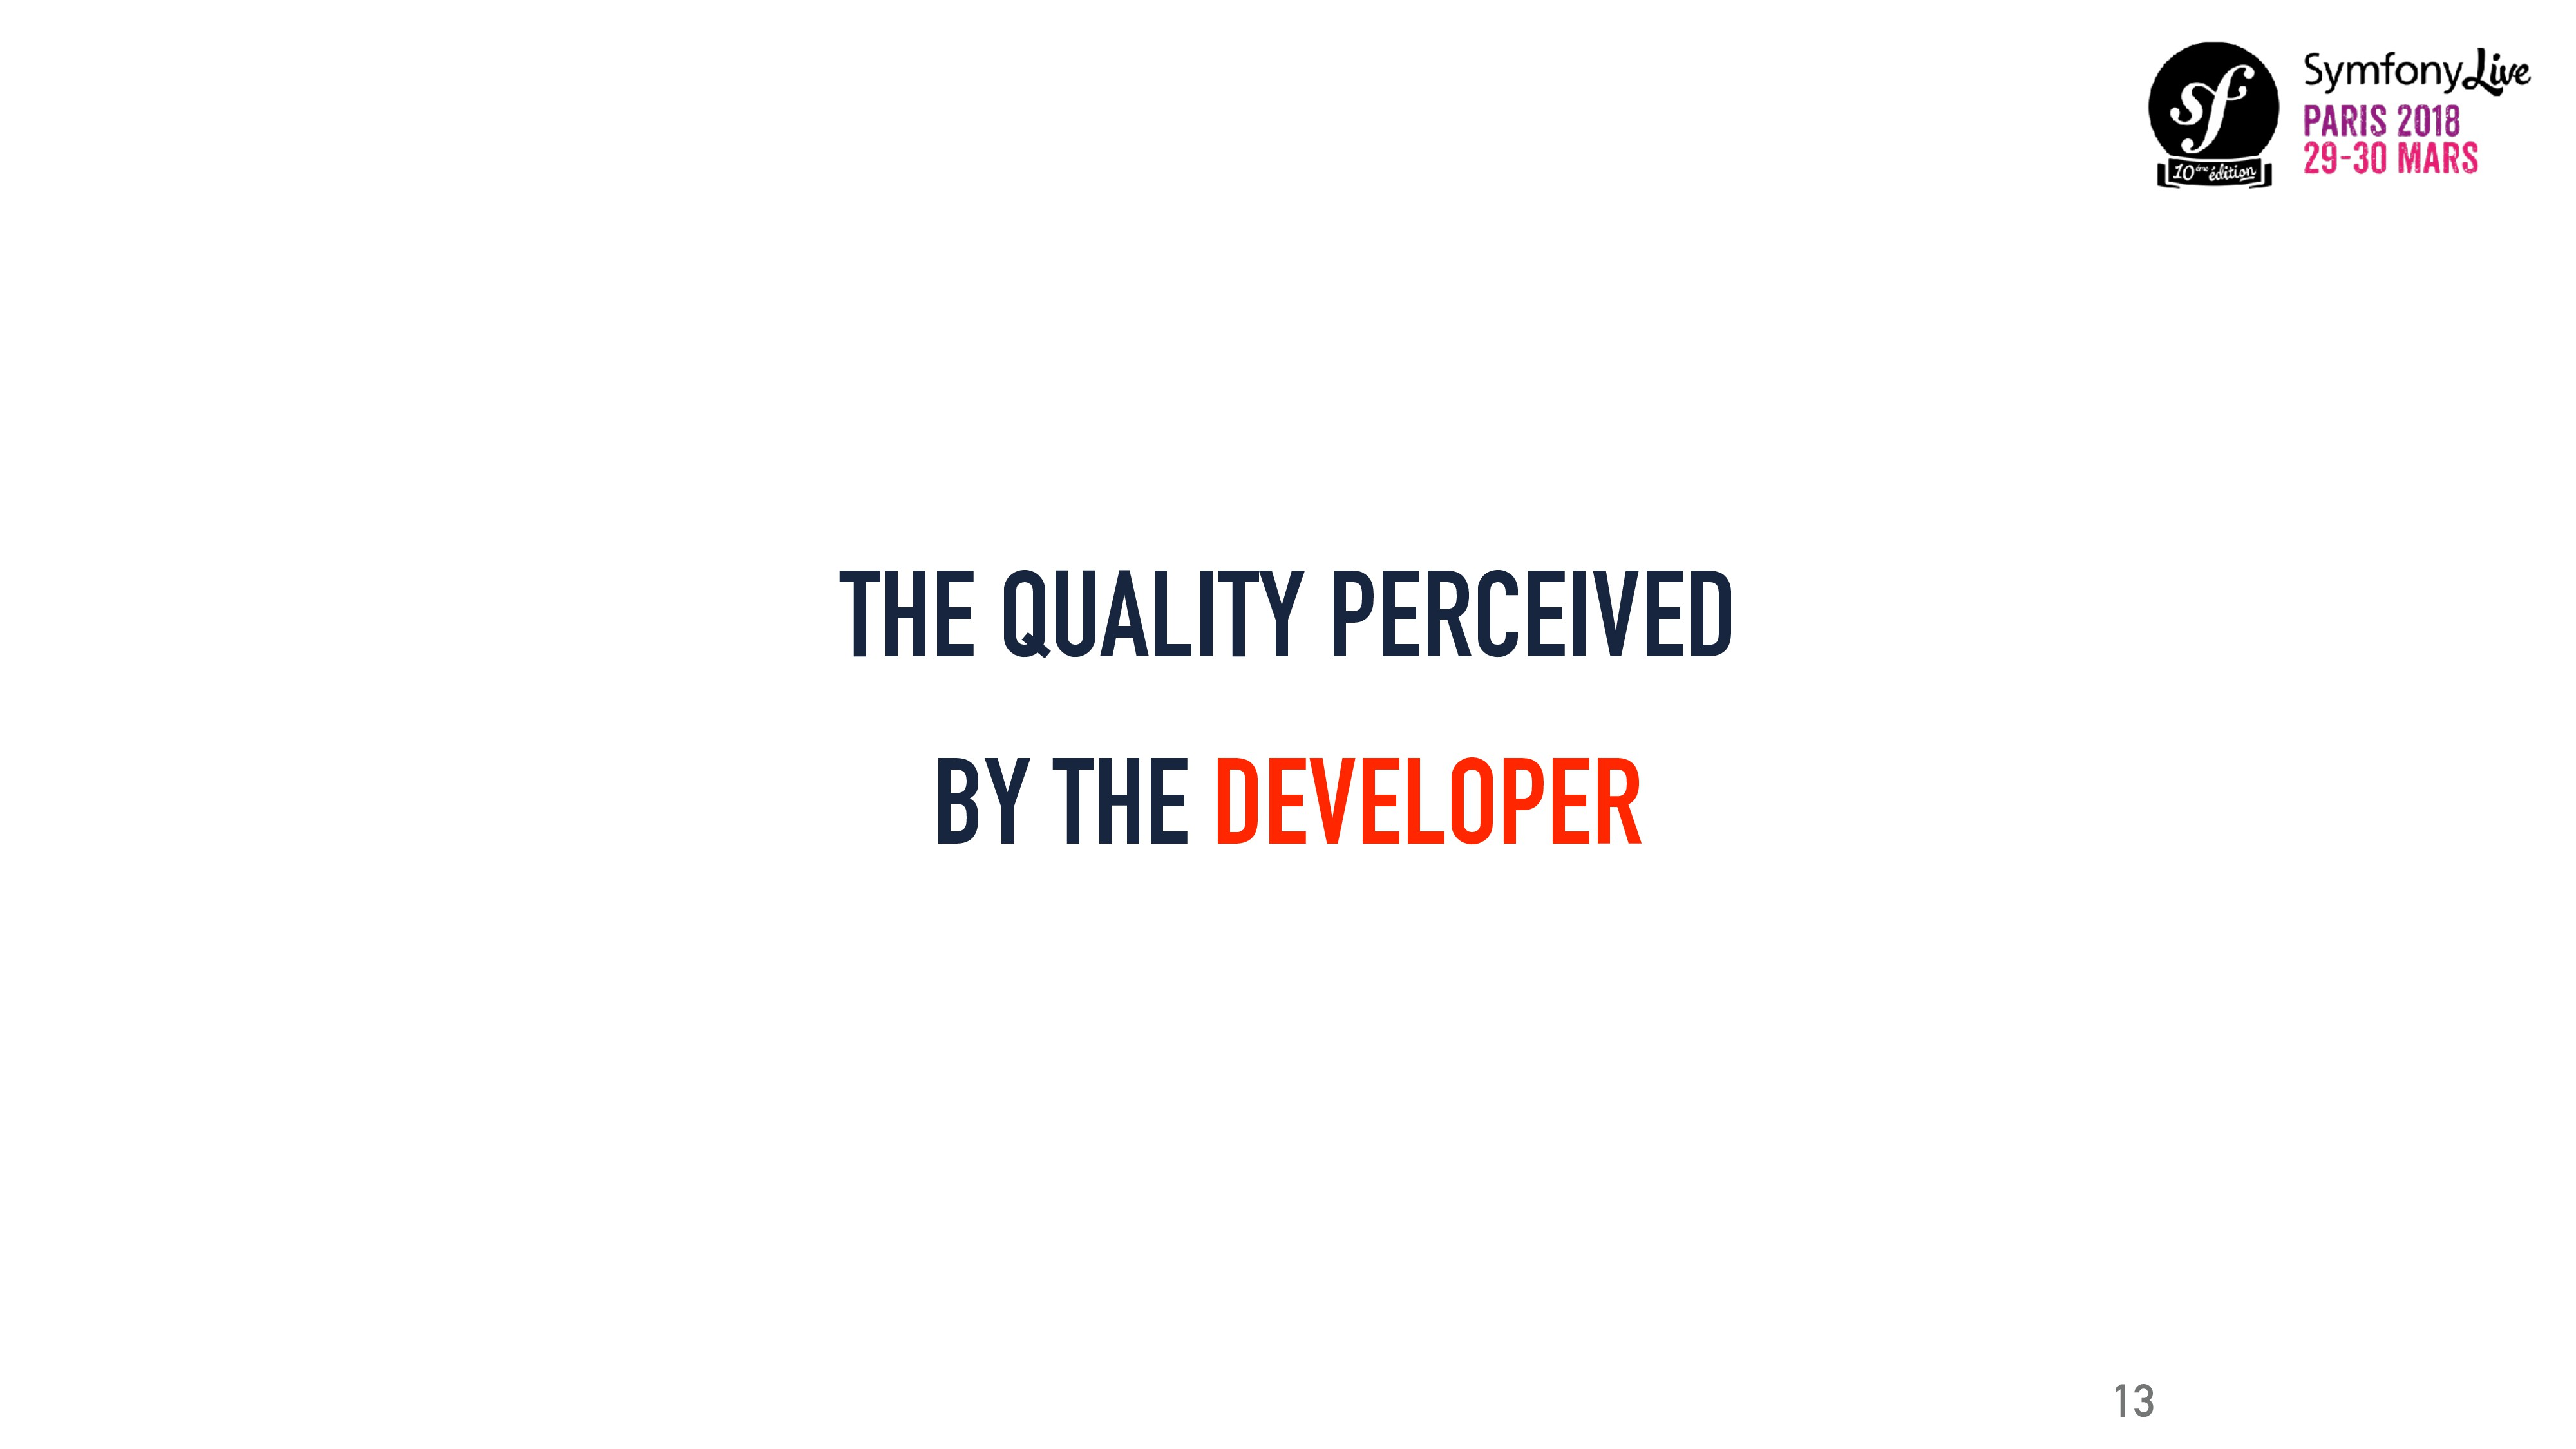 THE QUALITY PERCEIVED BY THE DEVELOPER 13